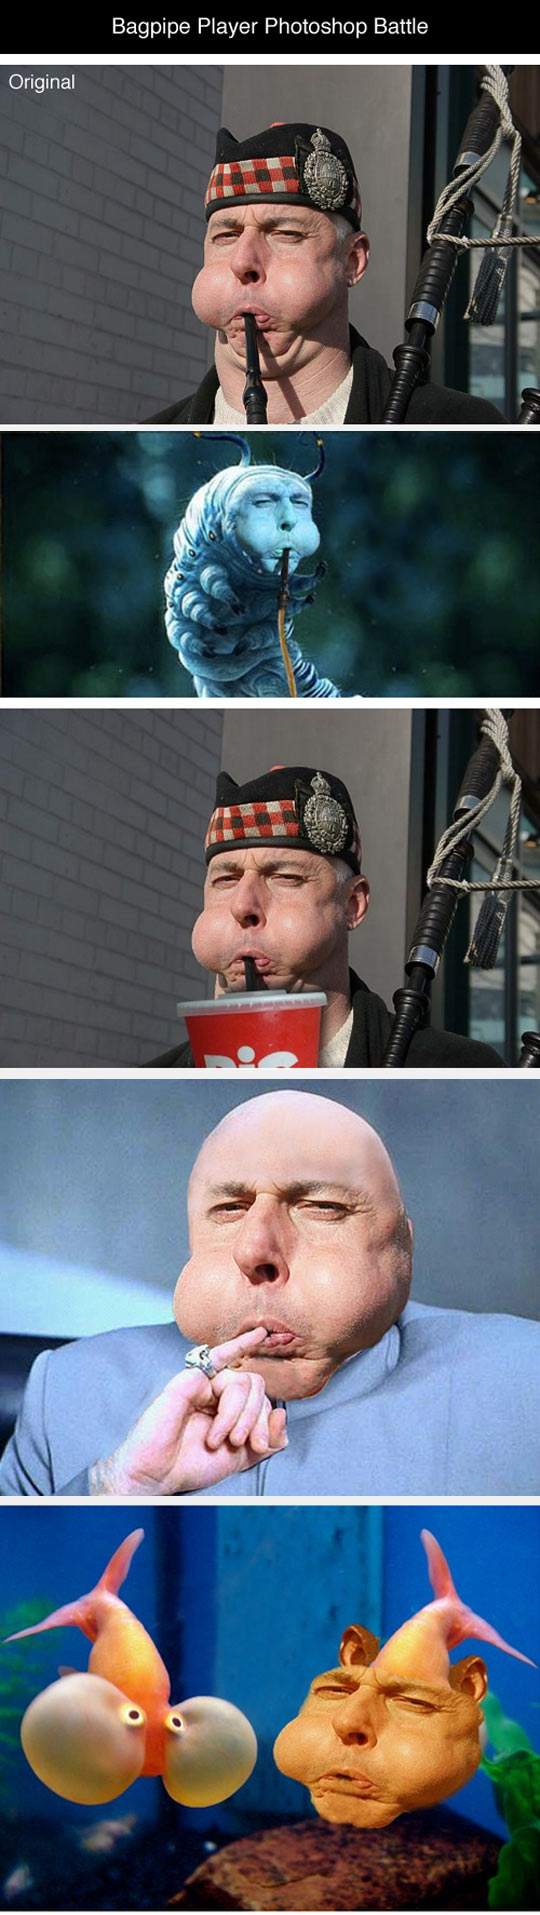 Bagpipe Player Photoshop Battle